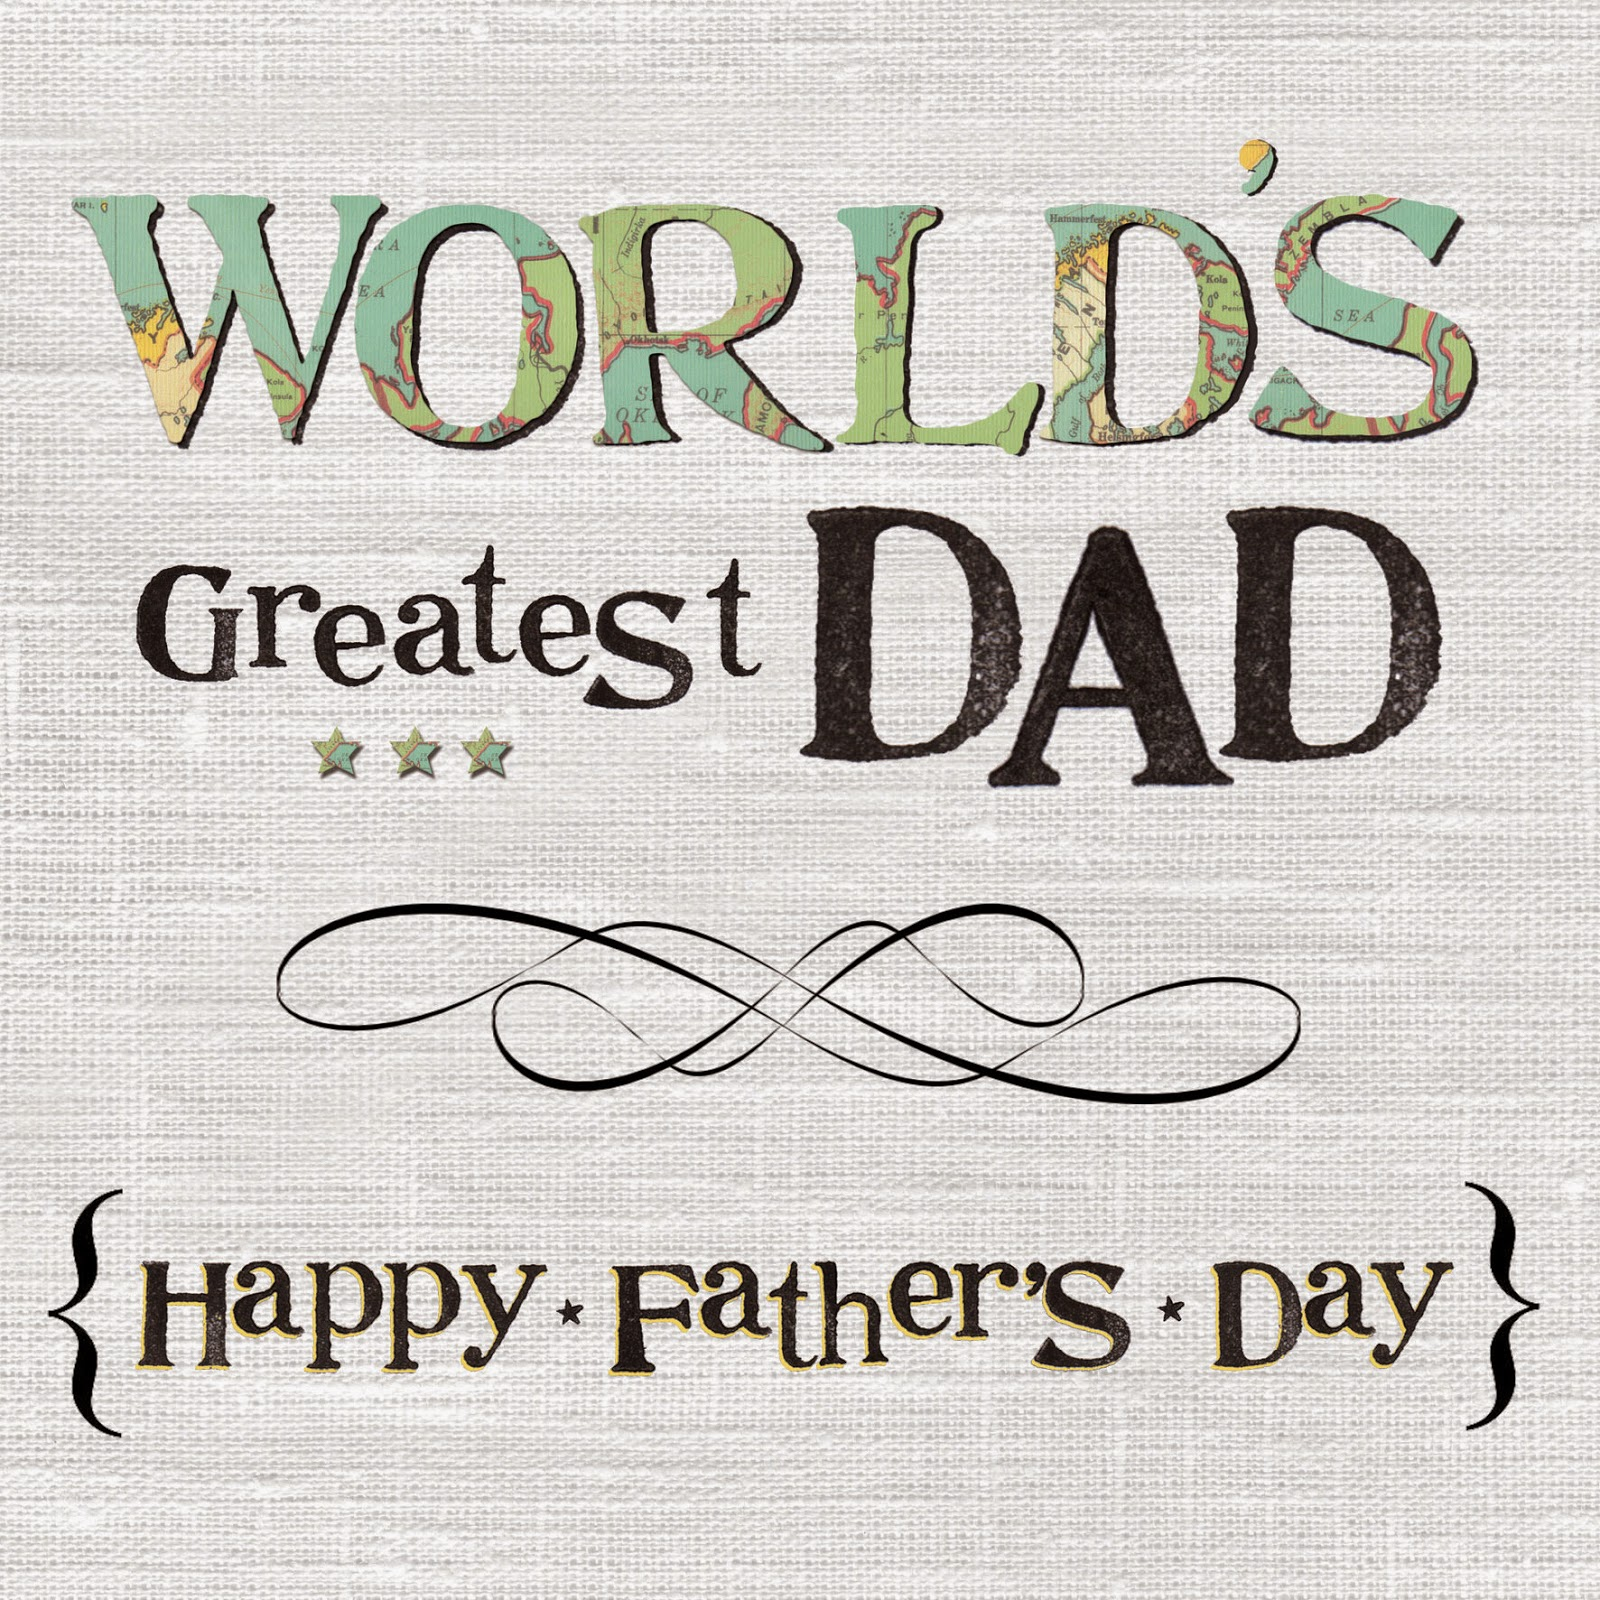 1000 x 658 jpeg 122kB, 2015 Father's Day Guide